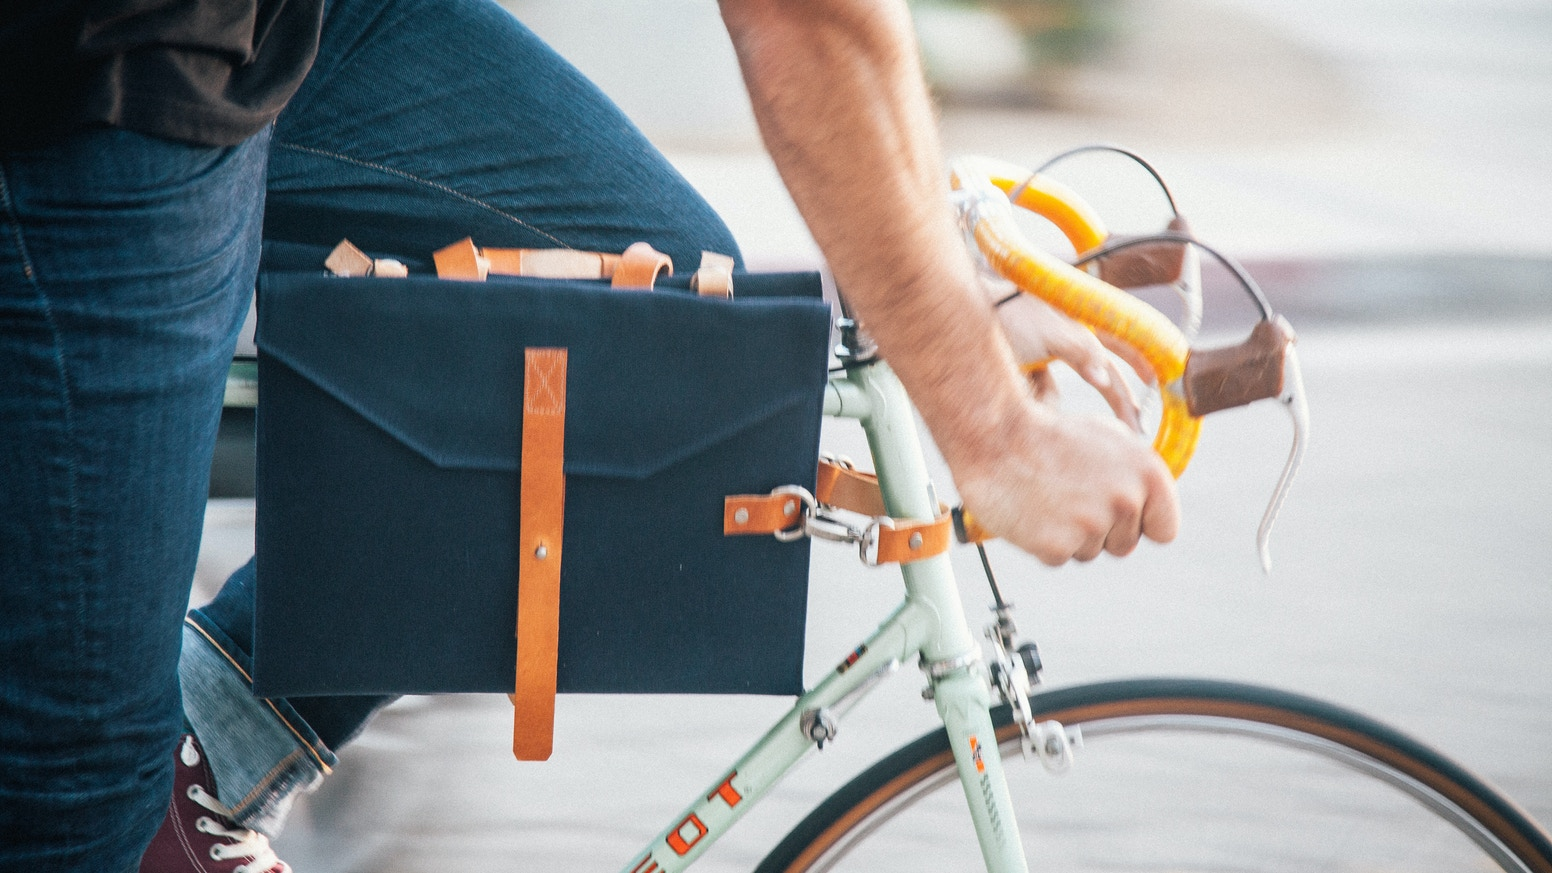 A simple and classy bag that latches onto the frame of your bike and other goodies that will make you feel like a superhero.